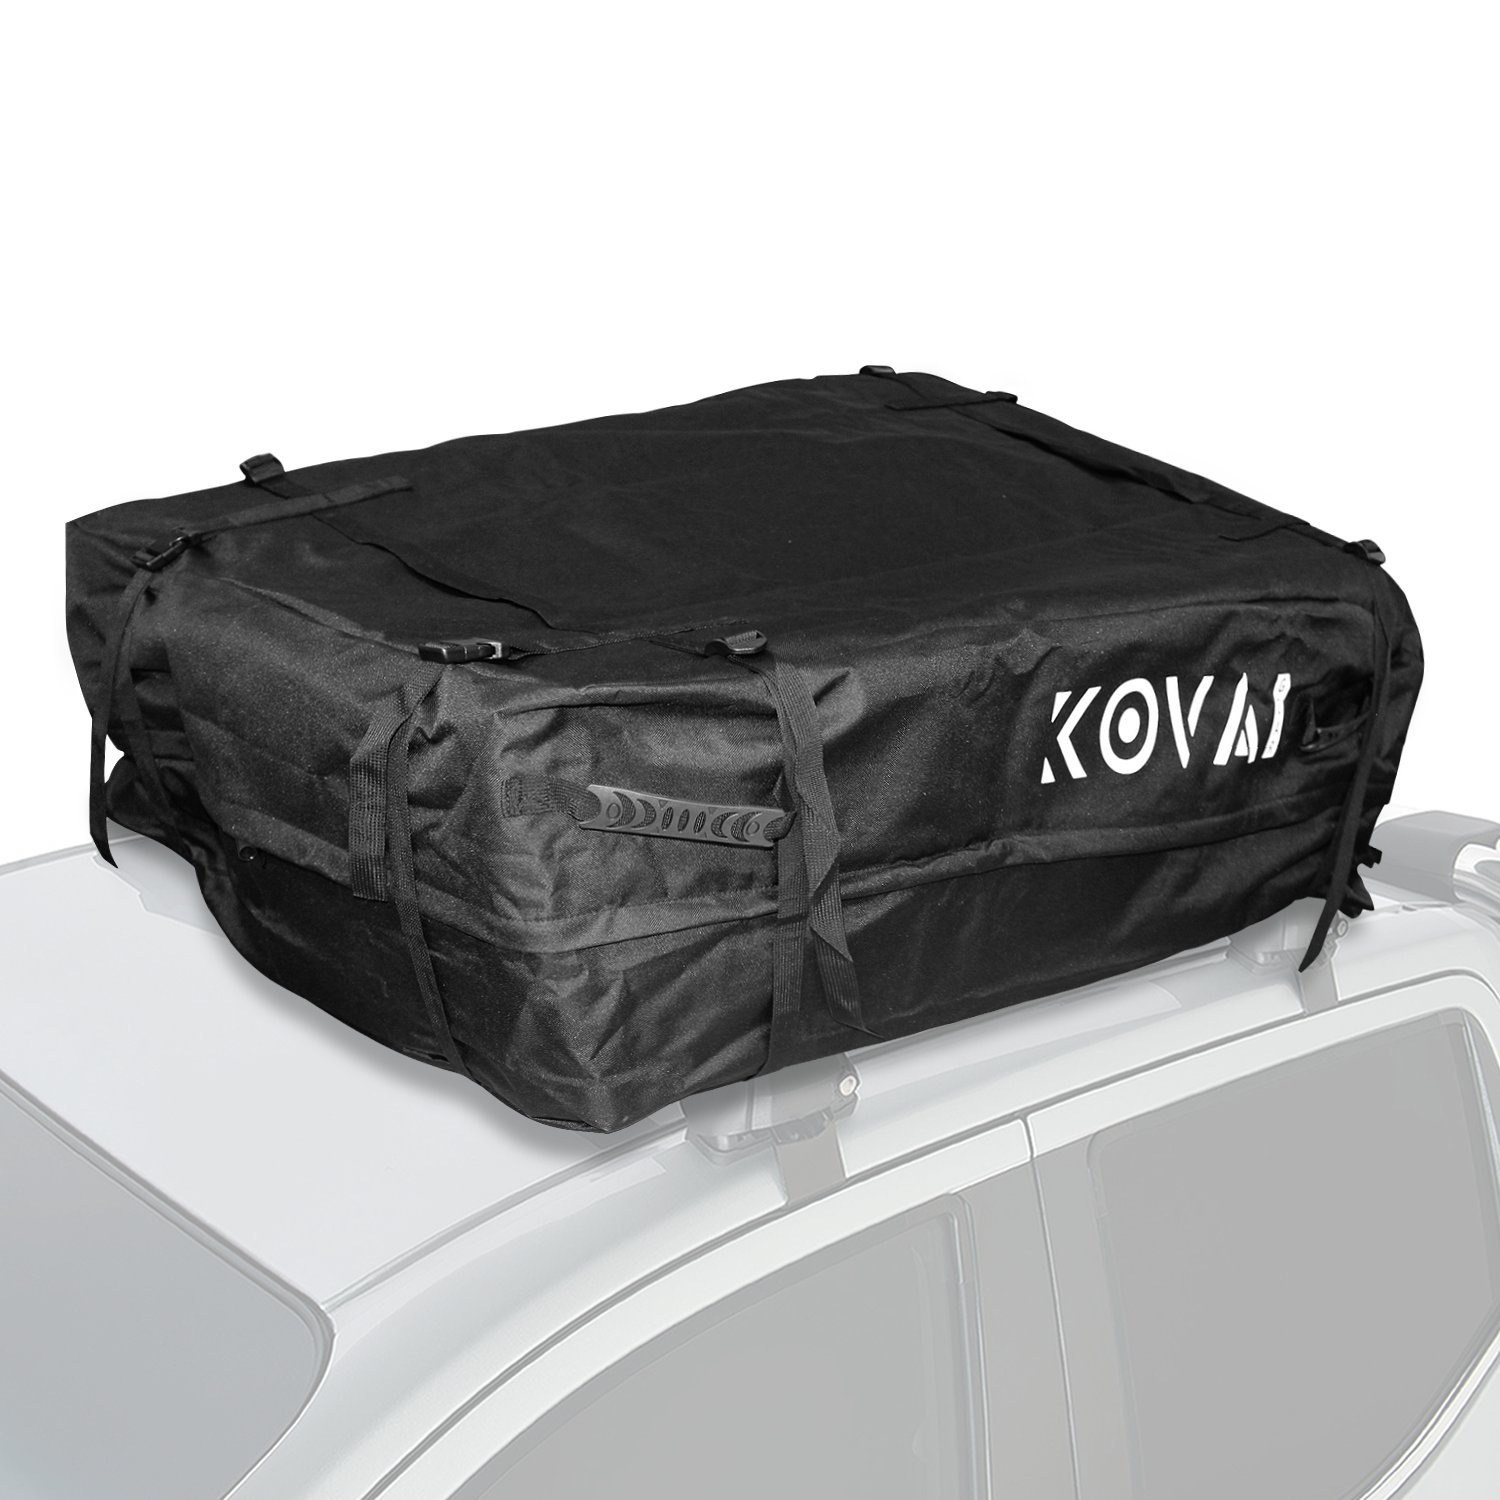 Kova Gear Rooftop Cargo Carrier Weatherproof Soft Bag (14.5 Cubic Ft Storage)